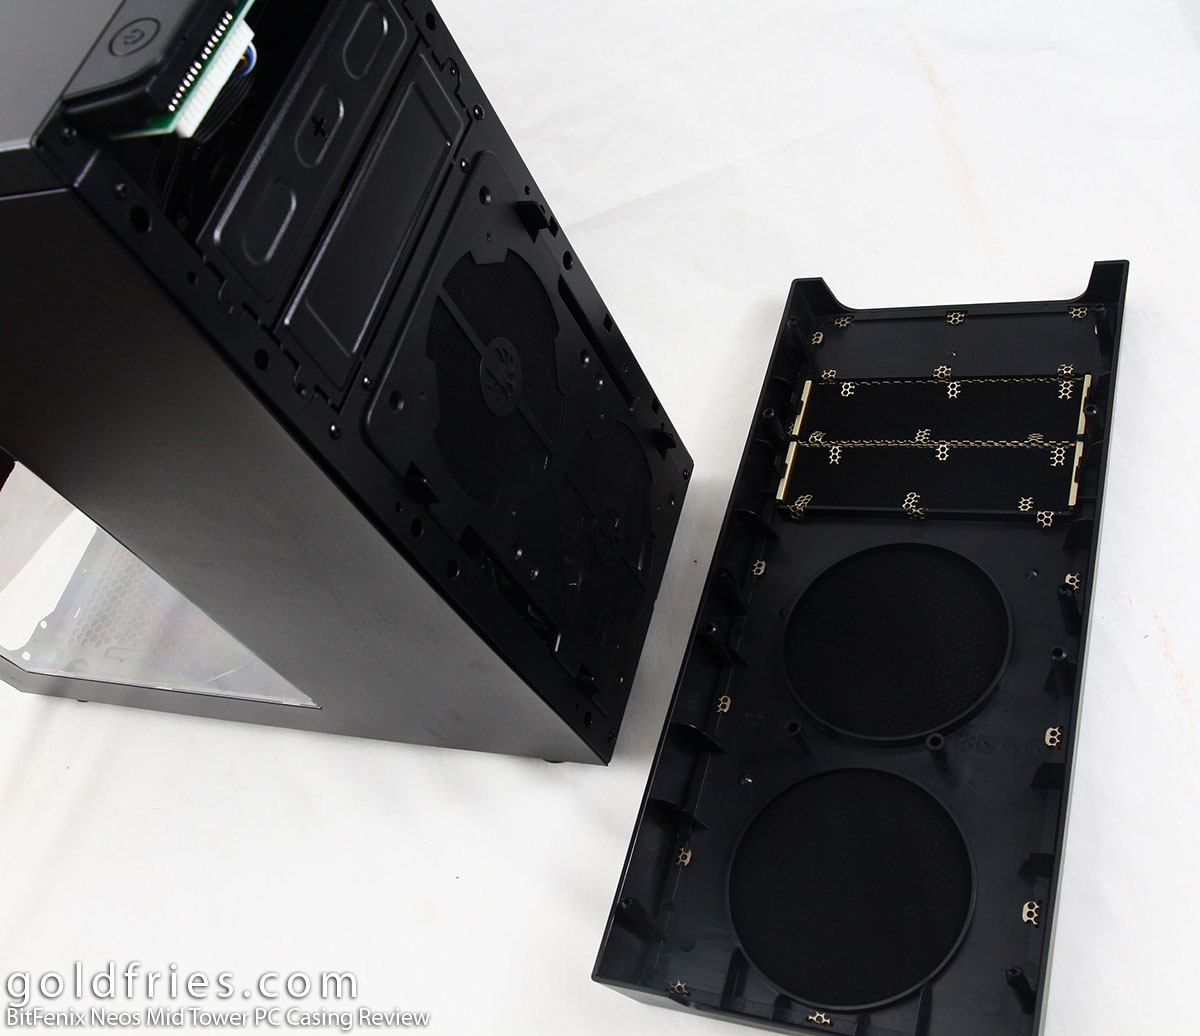 BitFenix neos Mid Tower PC Casing Review